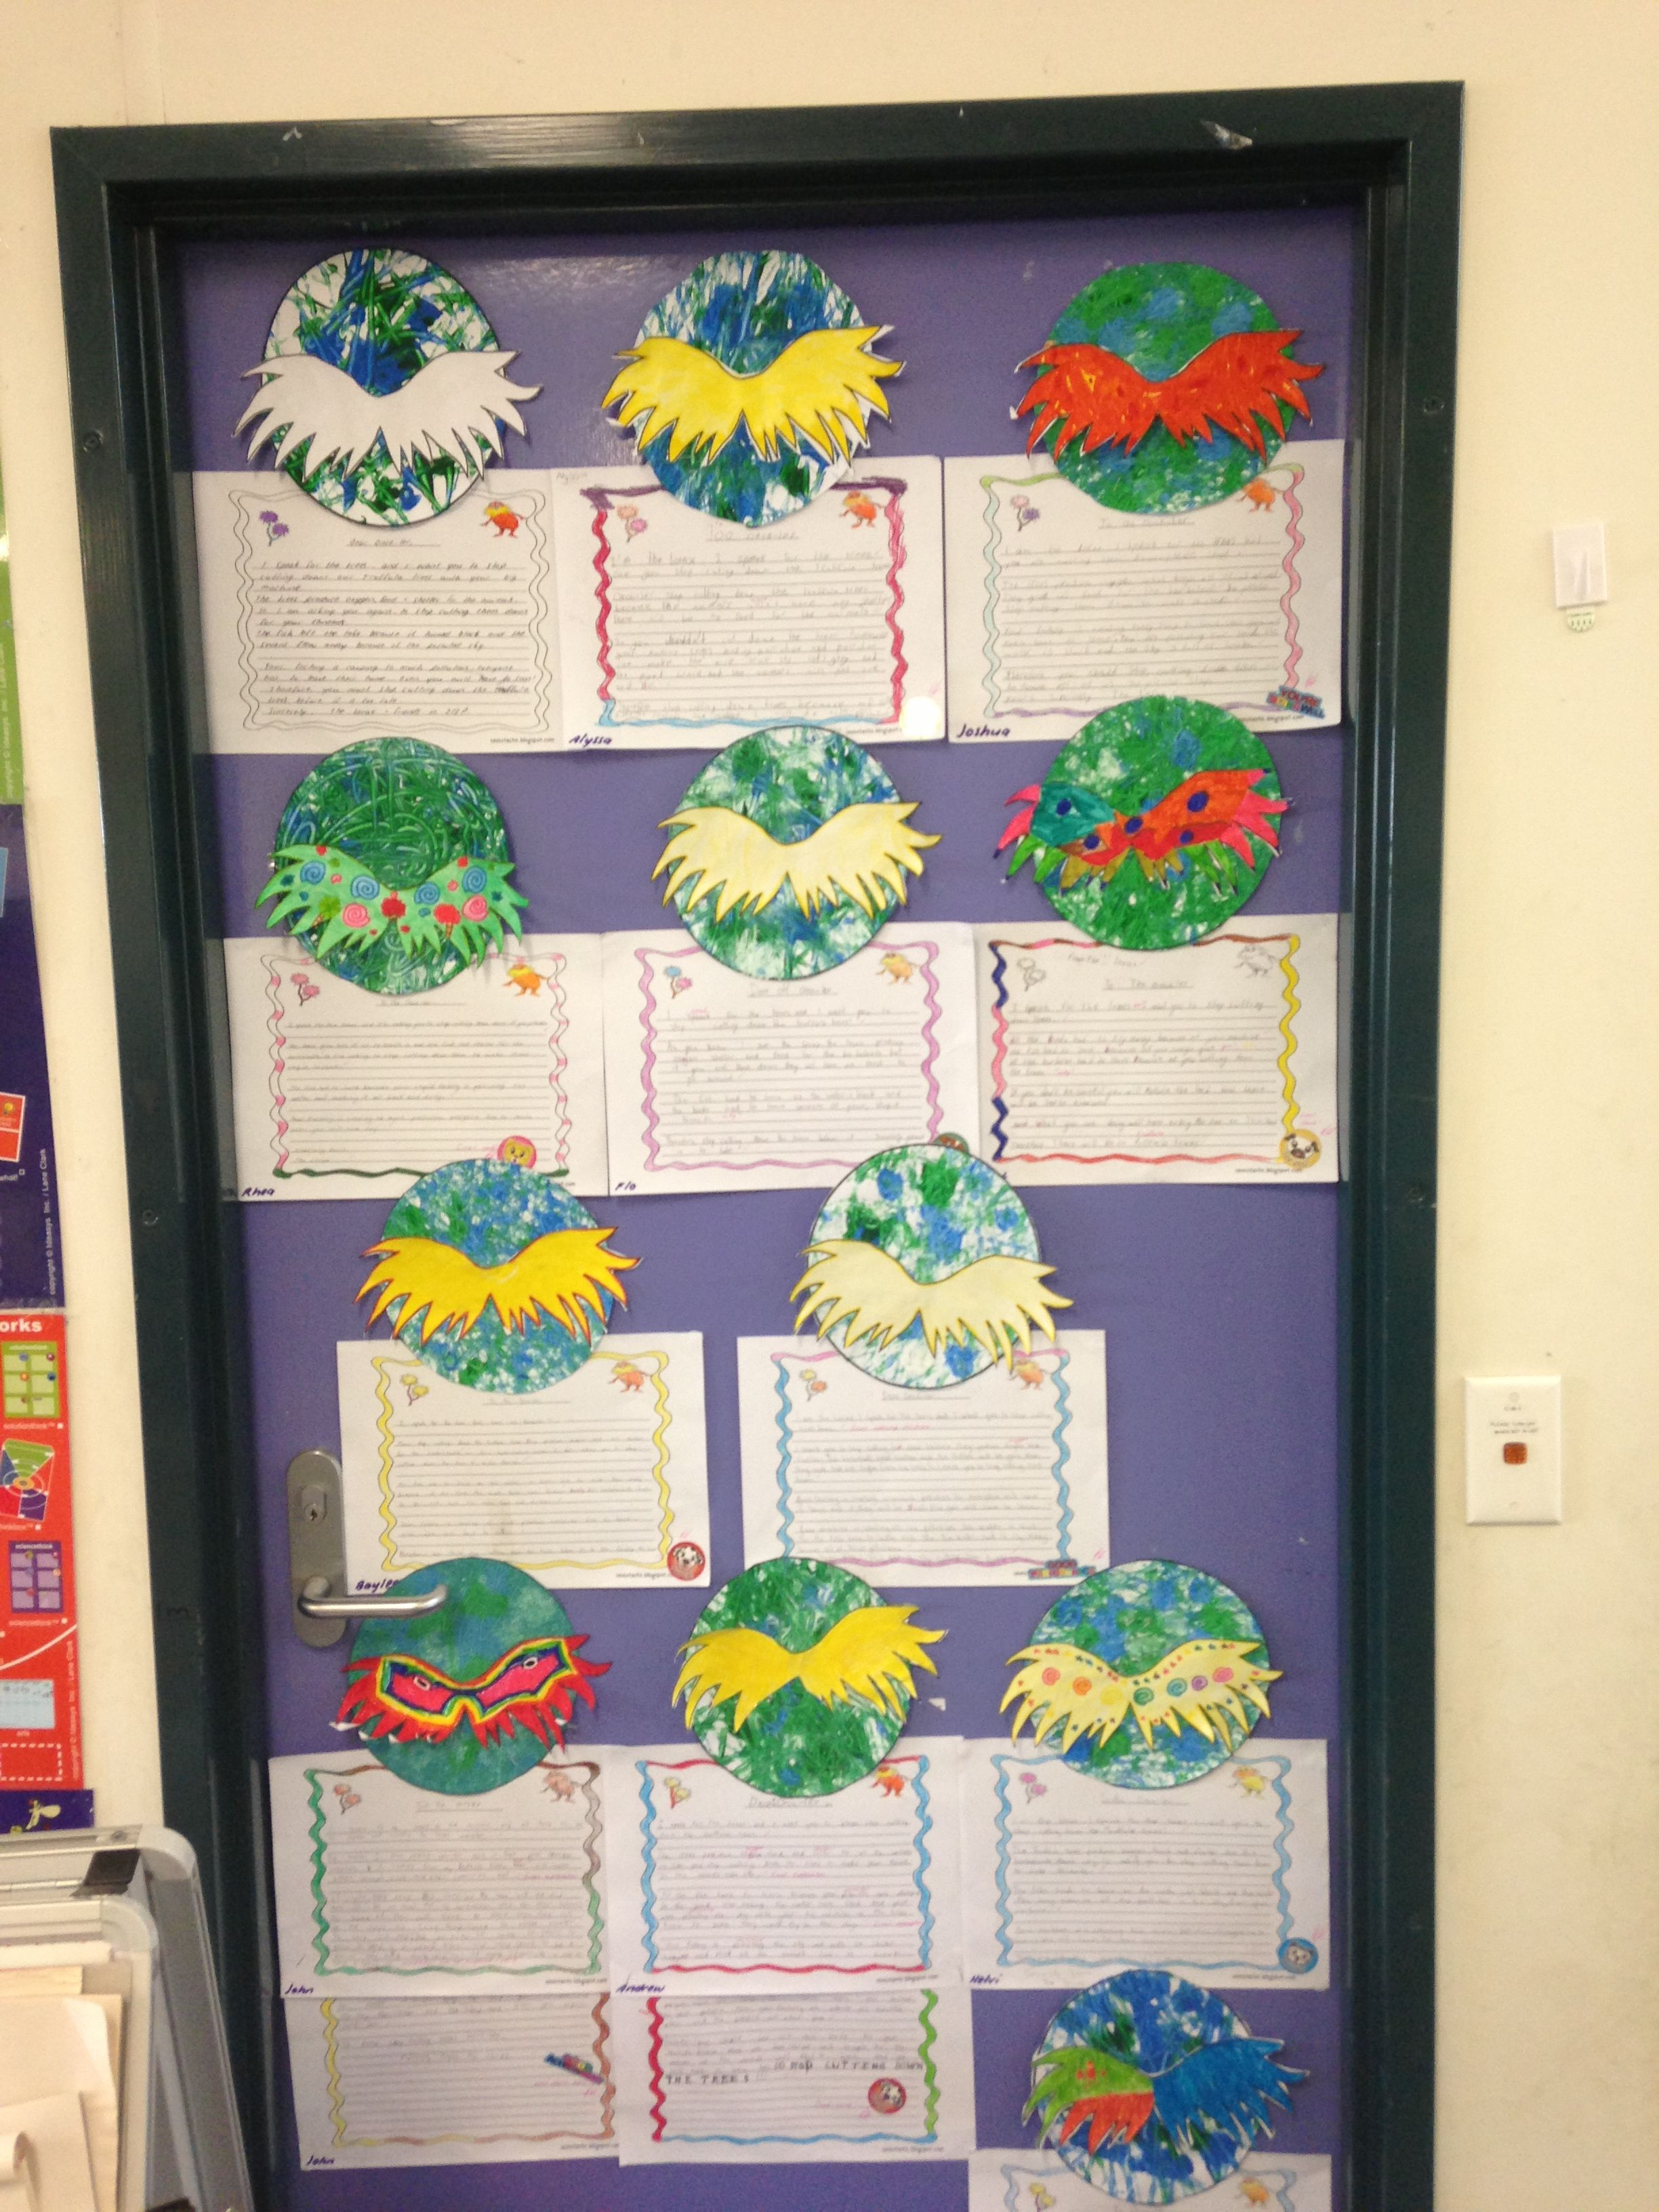 The Lorax persuasive letter writing and art activity